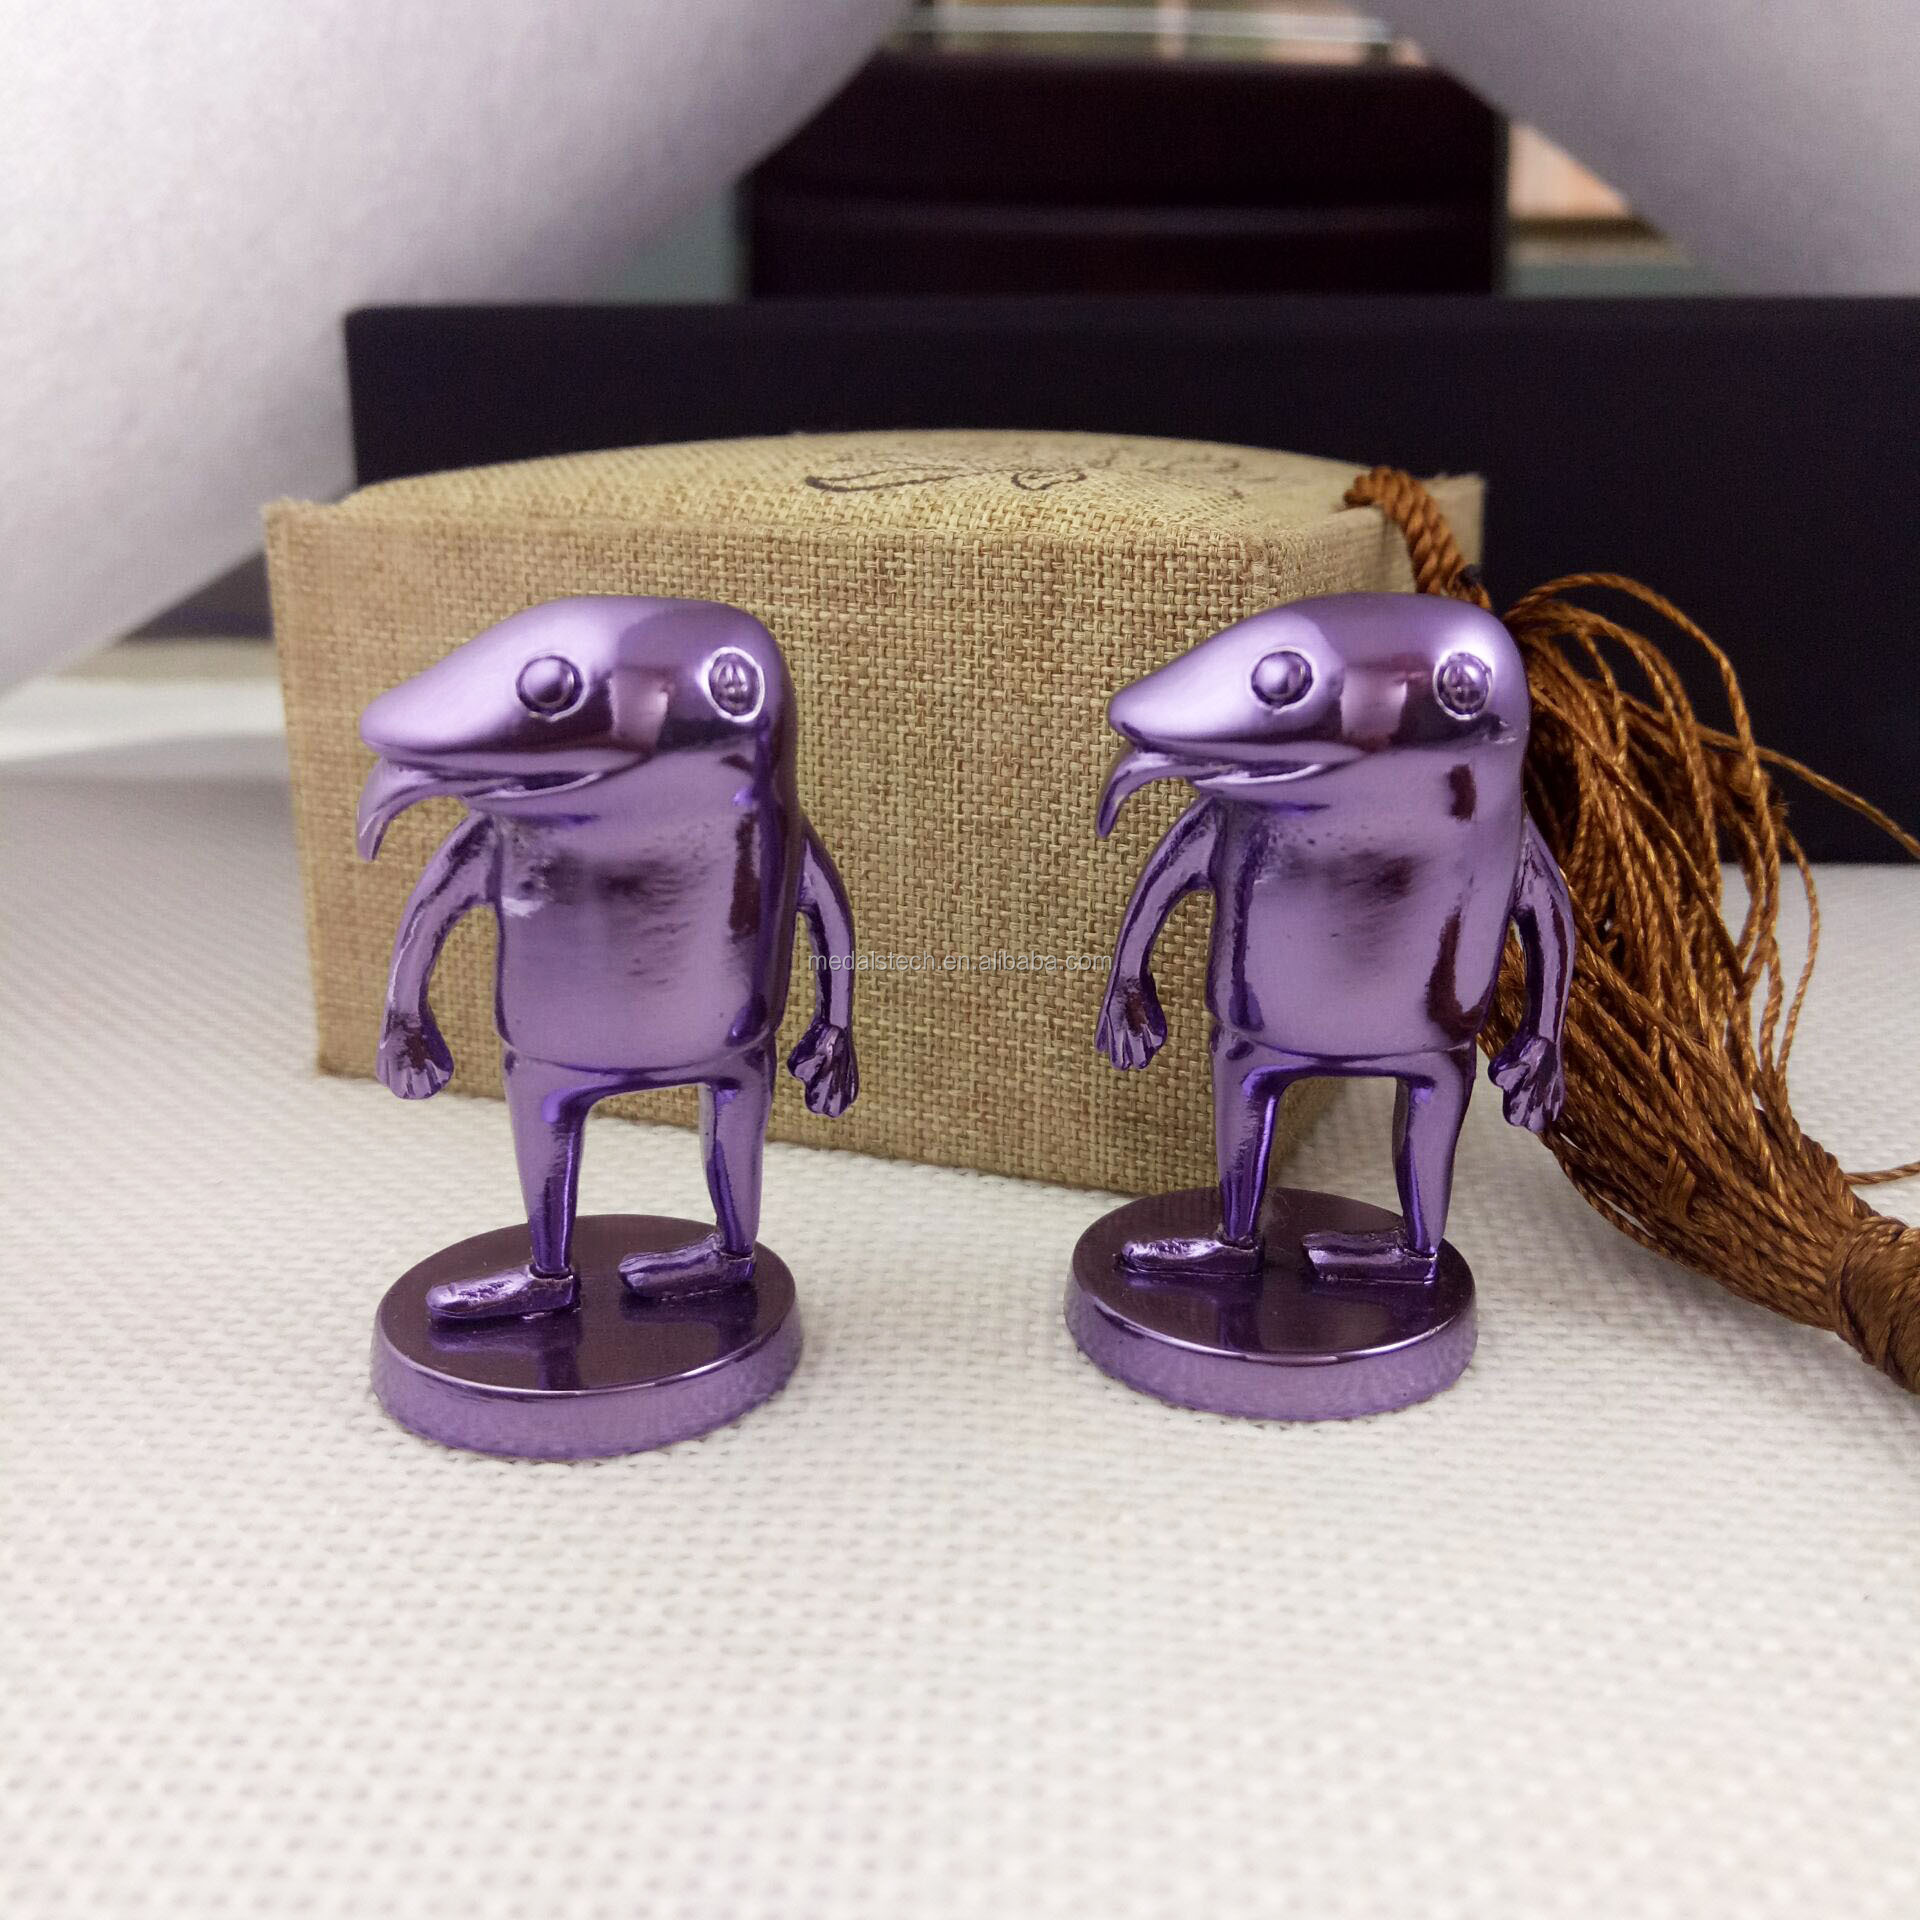 New arrival unique purple plating zinc alloy sculpture figure for souvenir